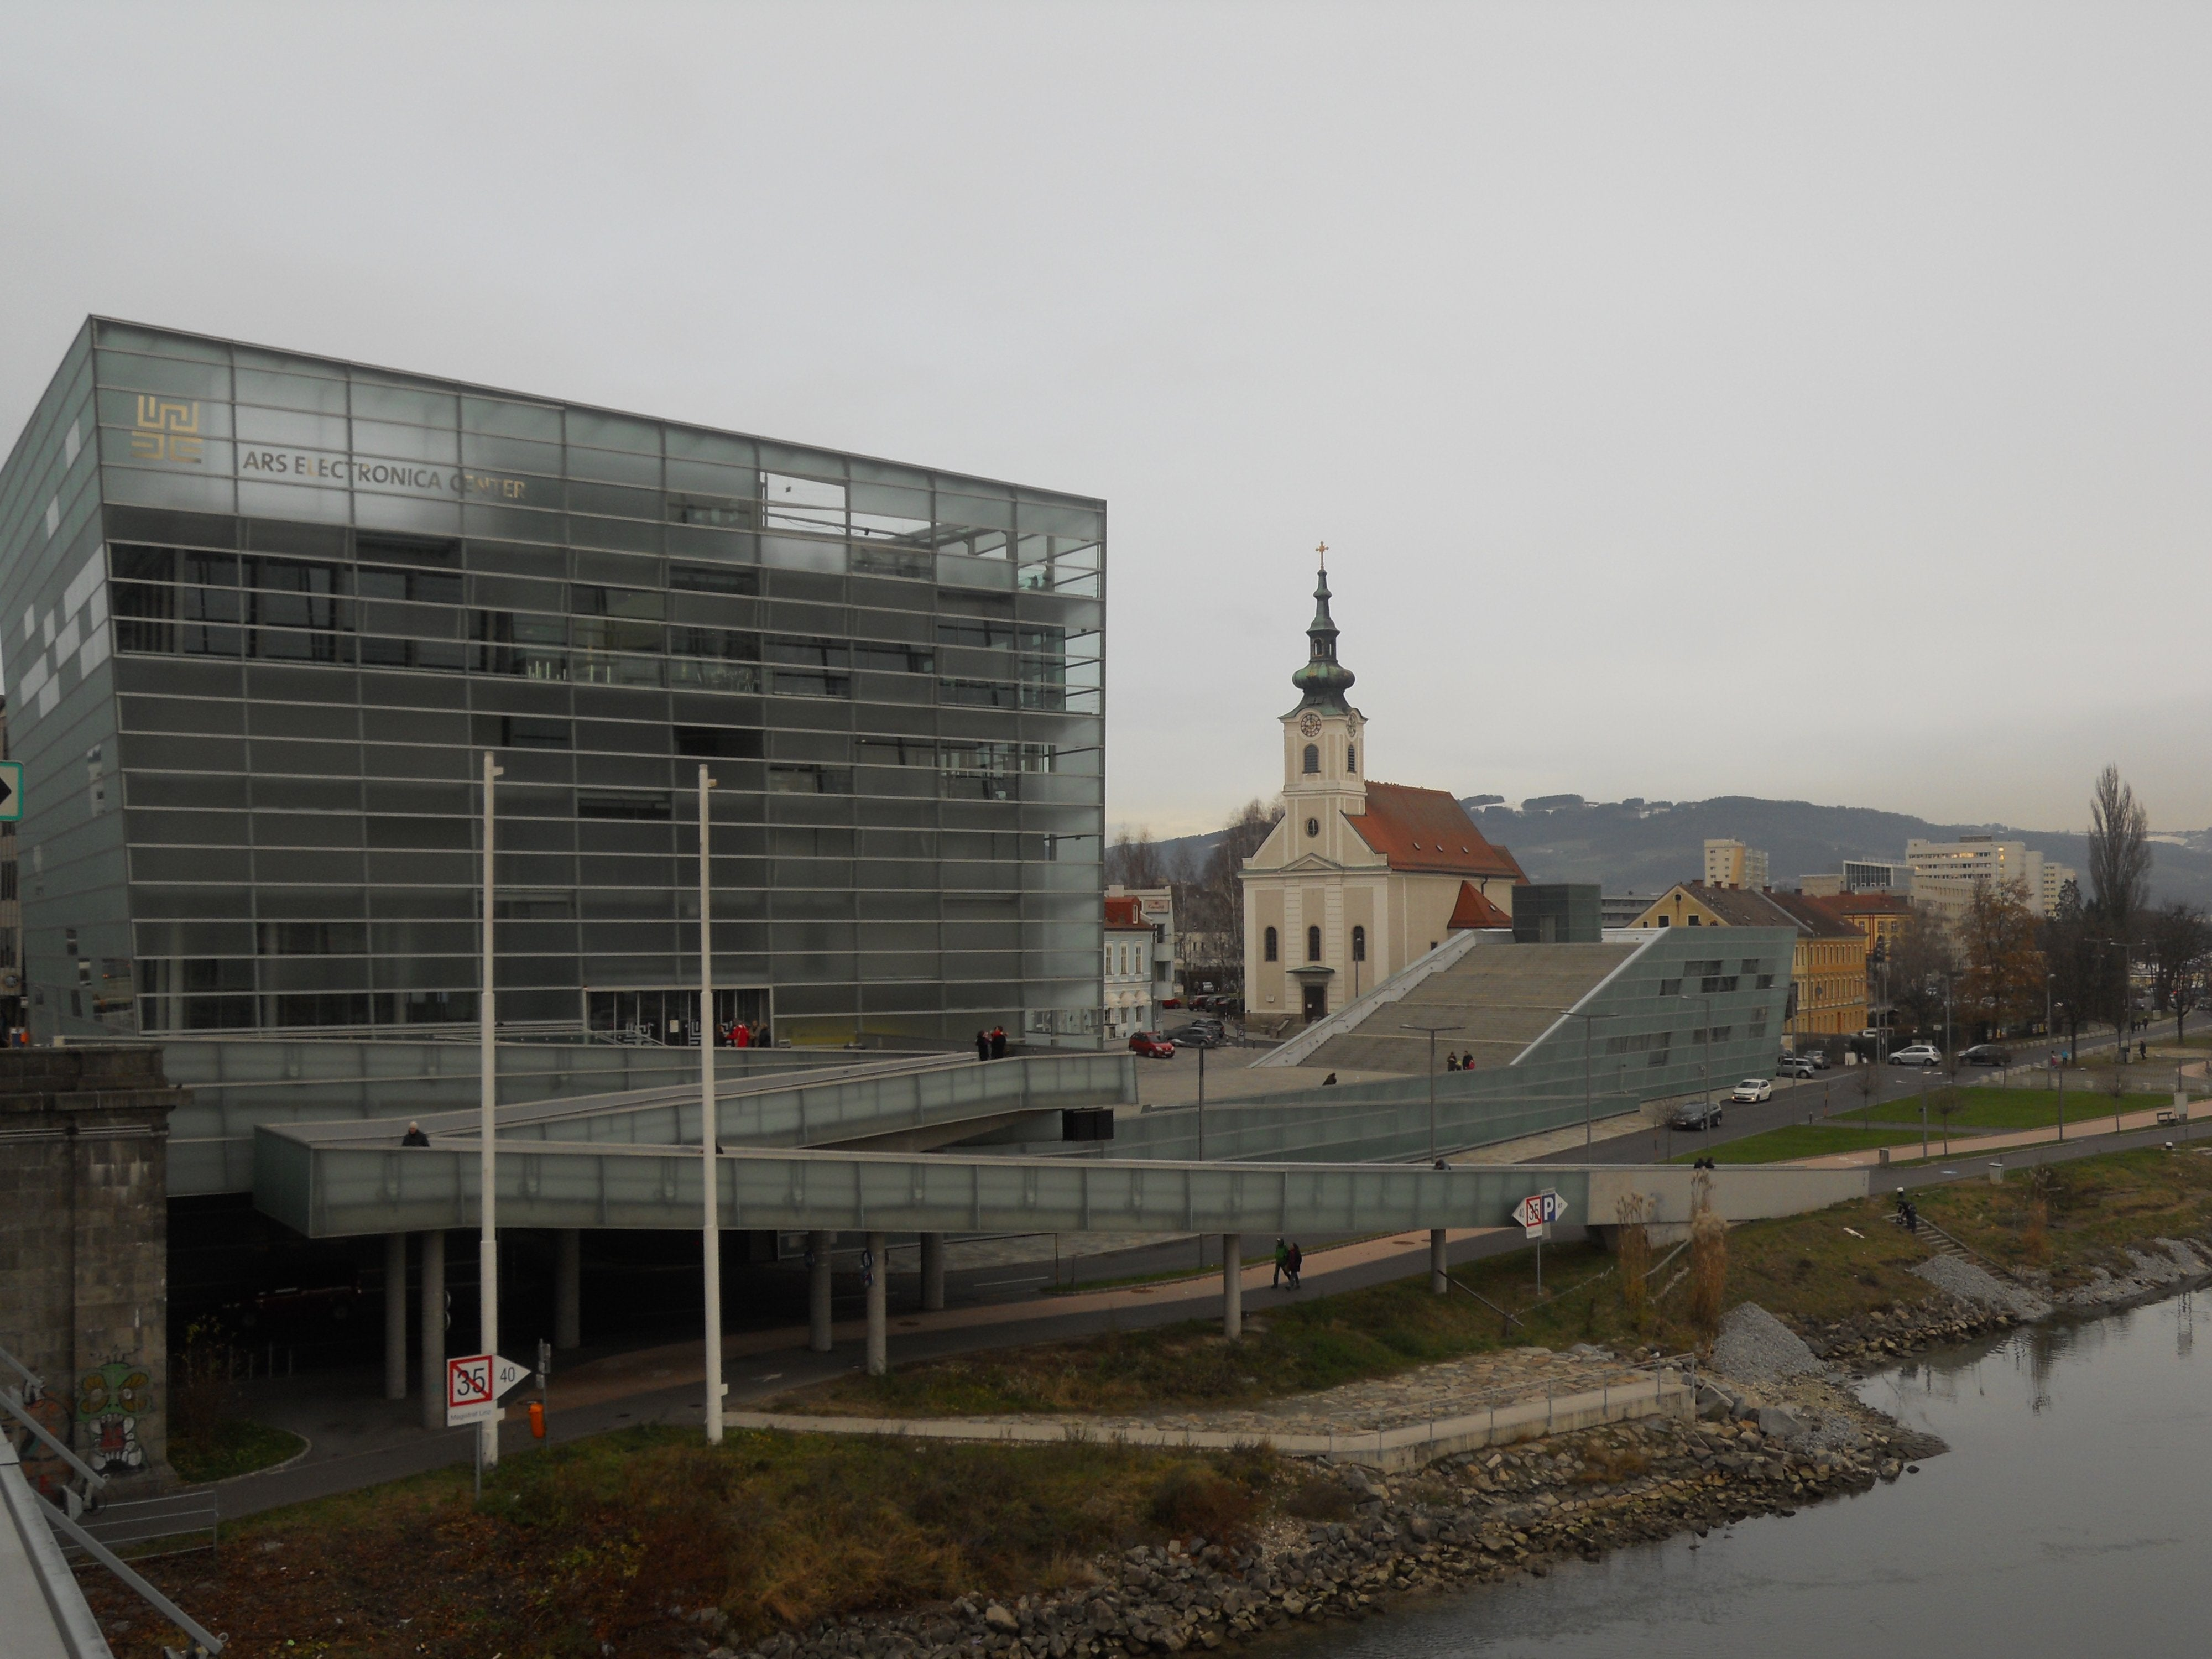 Architecture in Linz